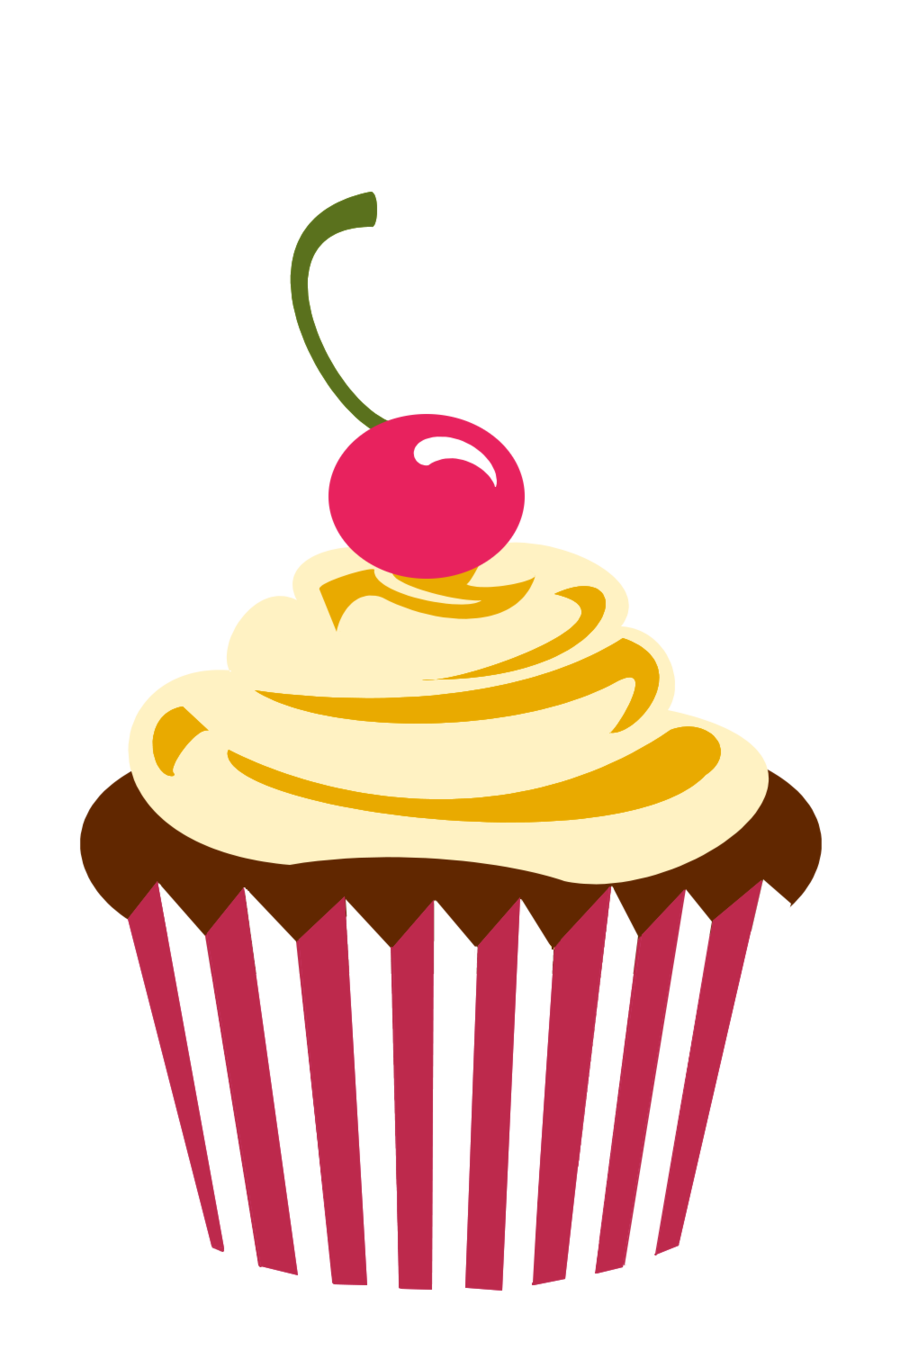 900x1350 Vanilla Cupcake Clipart Party Food